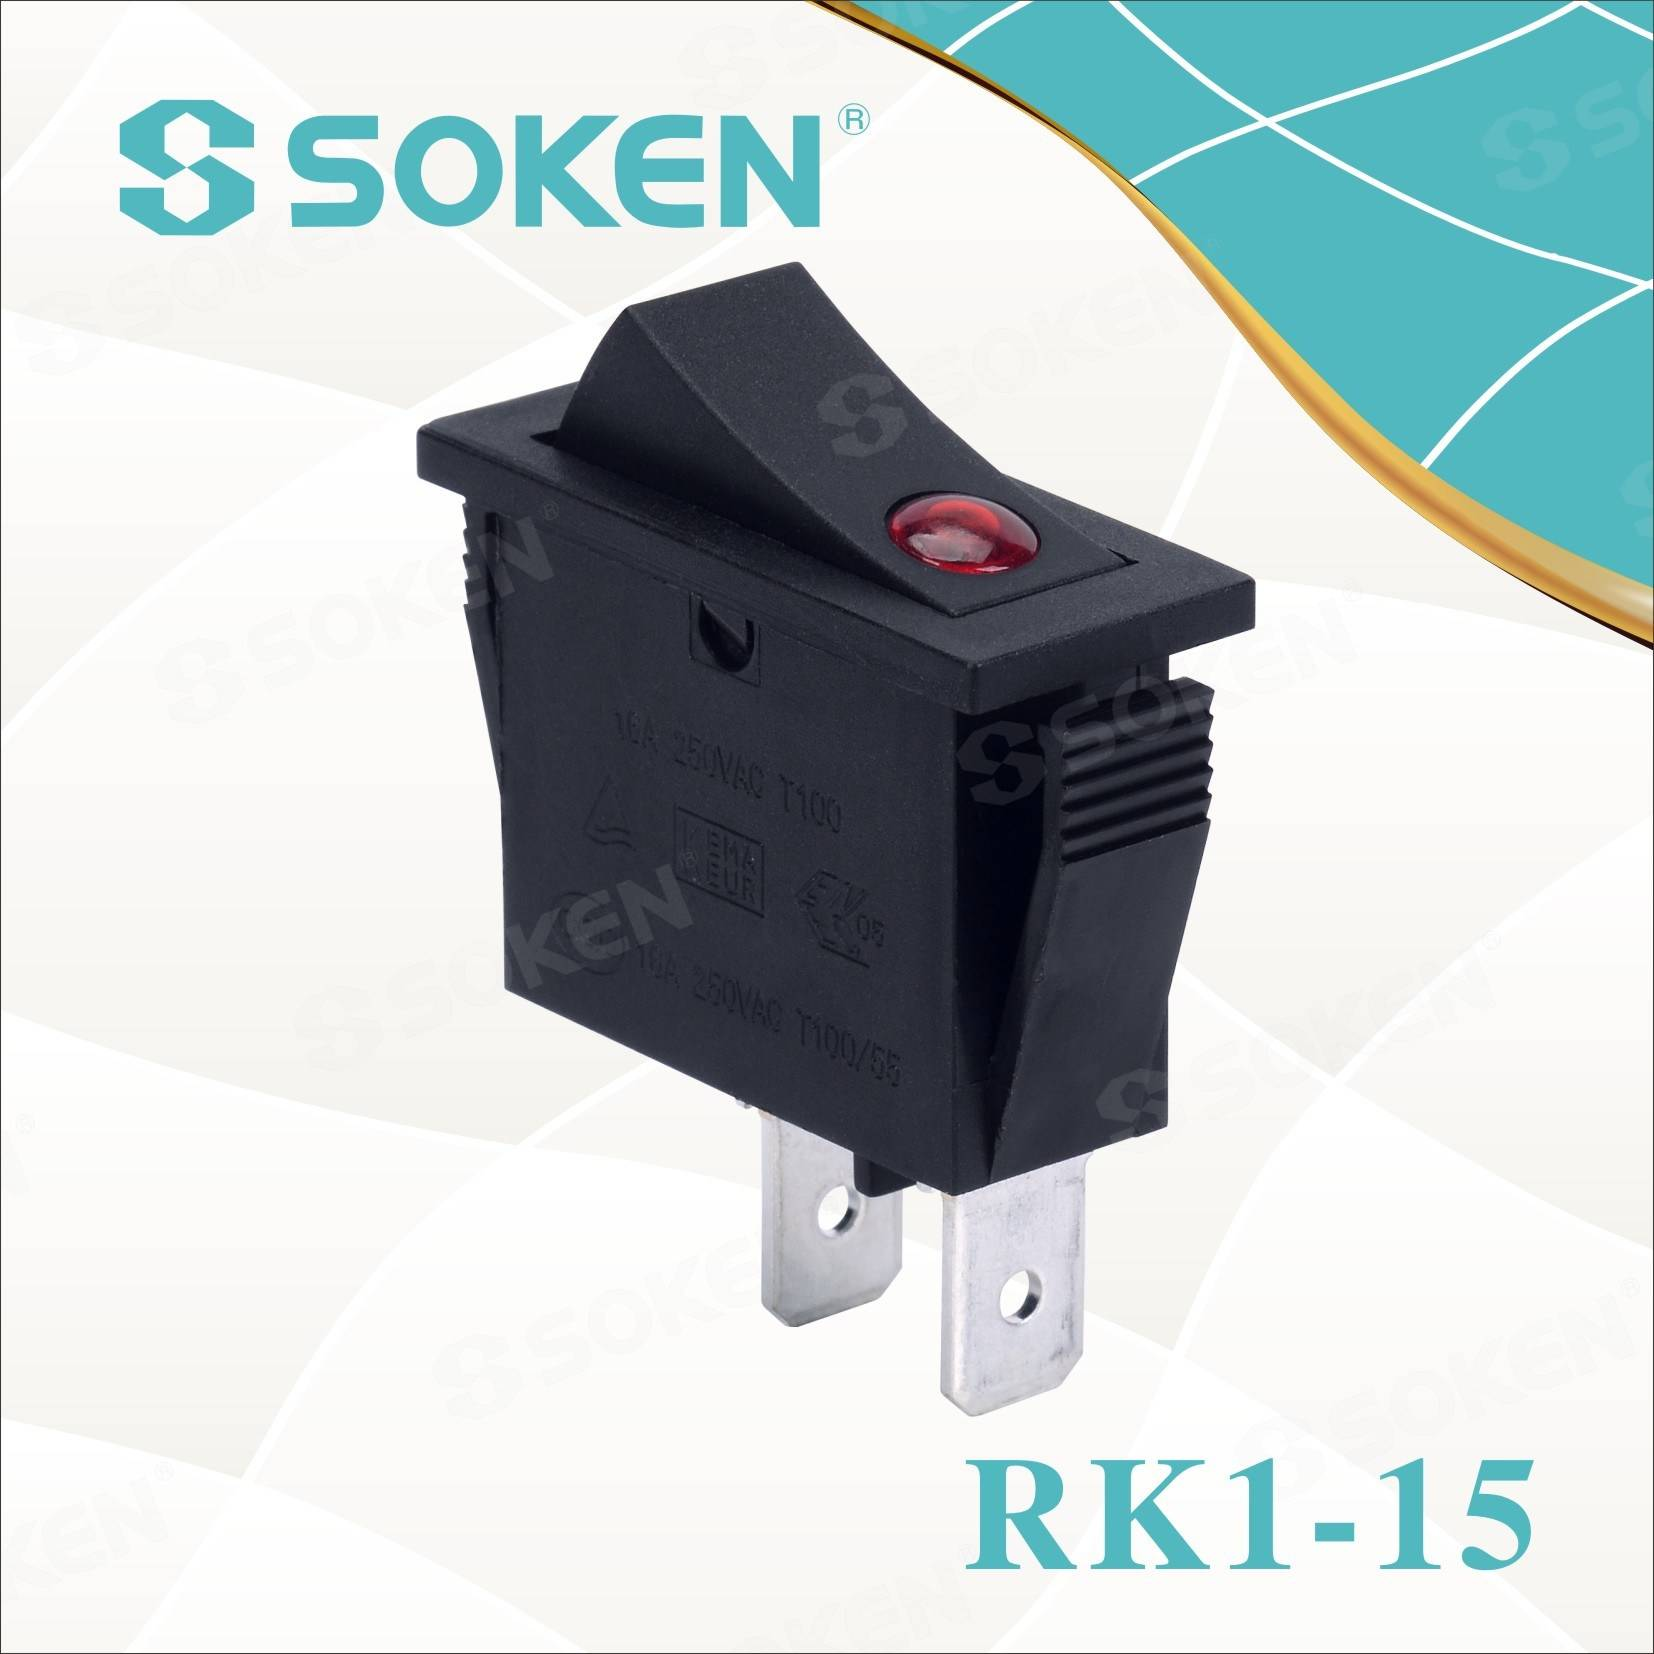 Soken Rk1-15 1X1 B/B on off Rocker Switch